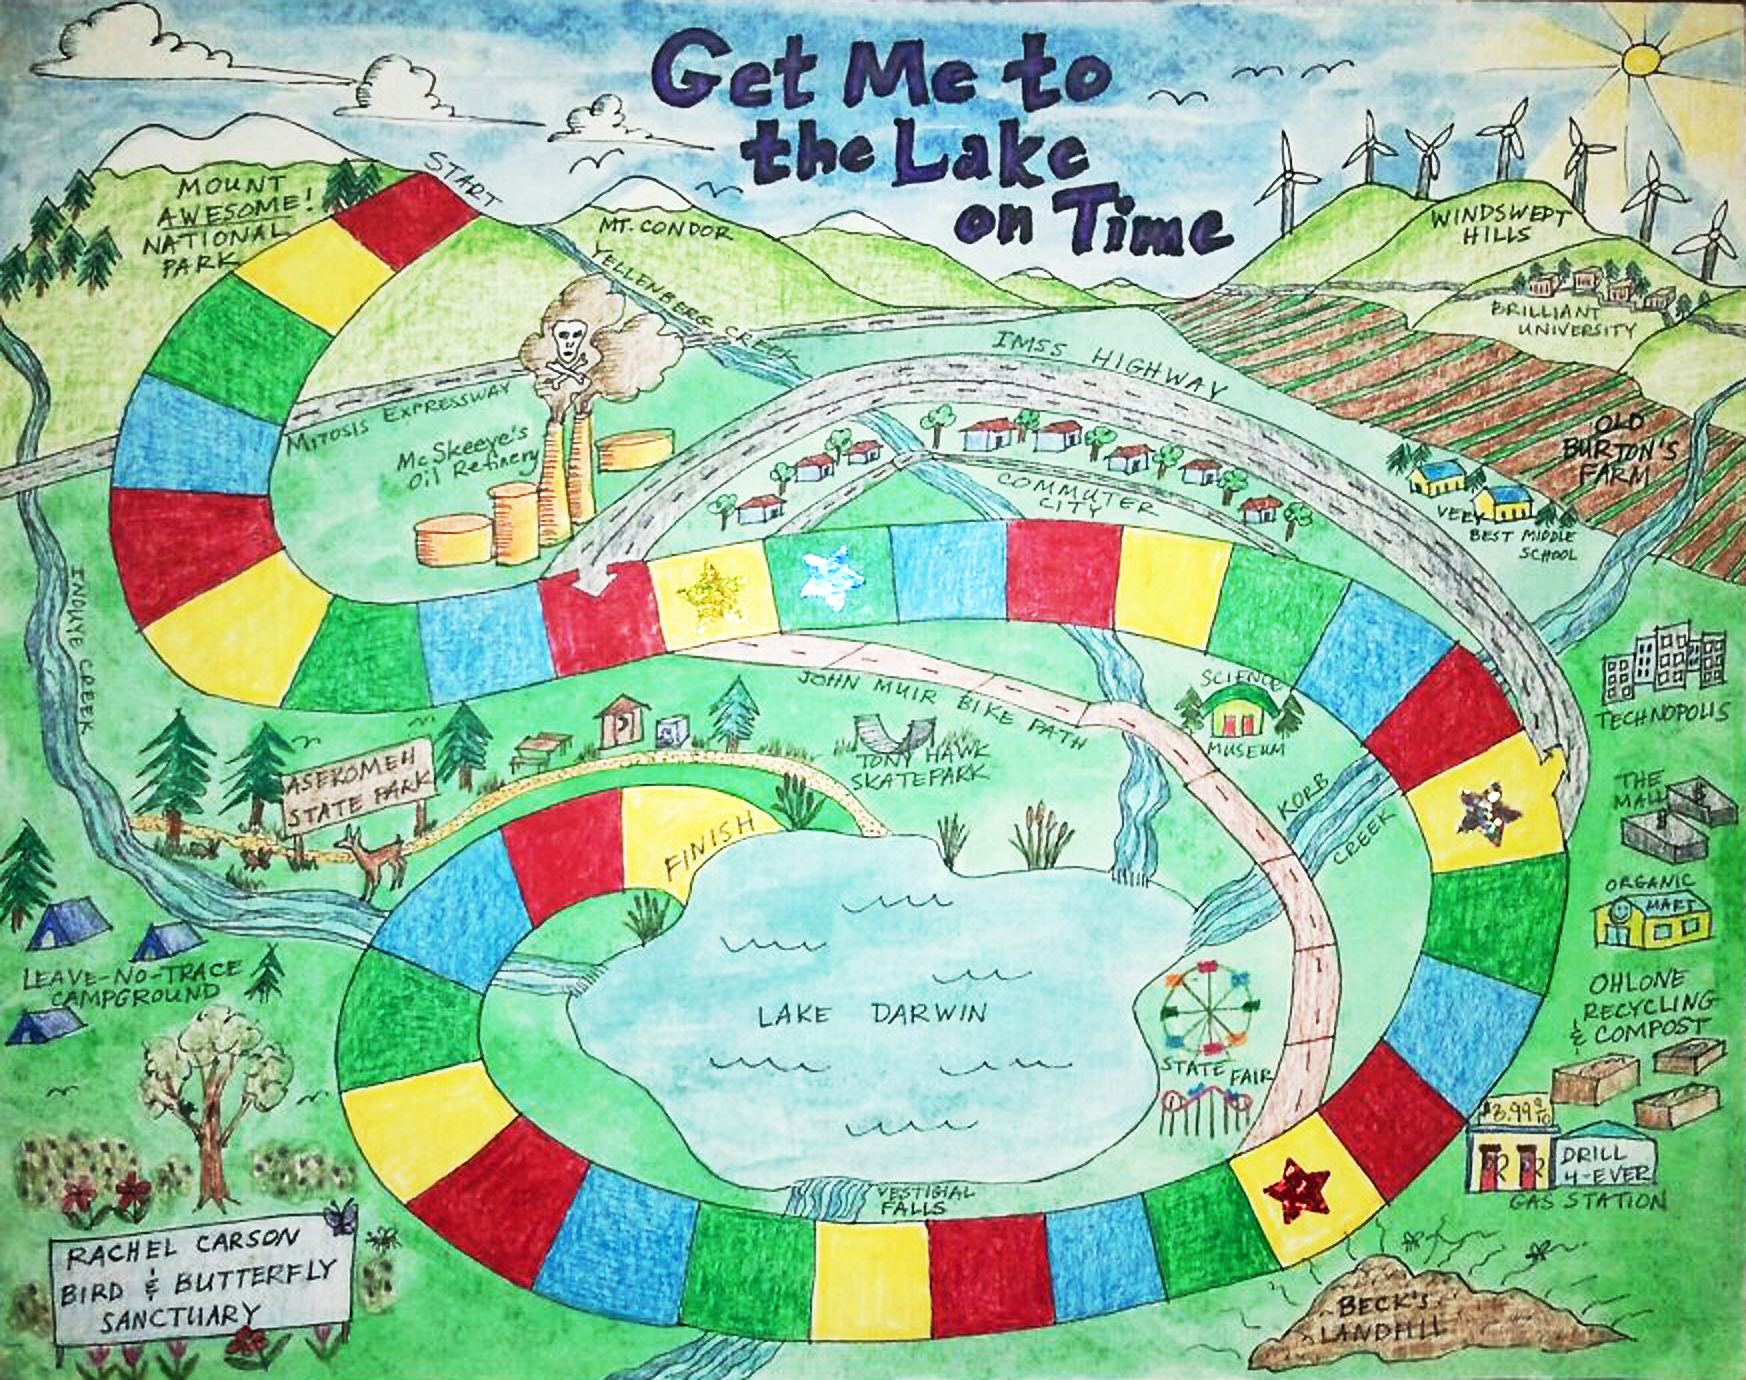 Get Me to the Lake On Time! Game board